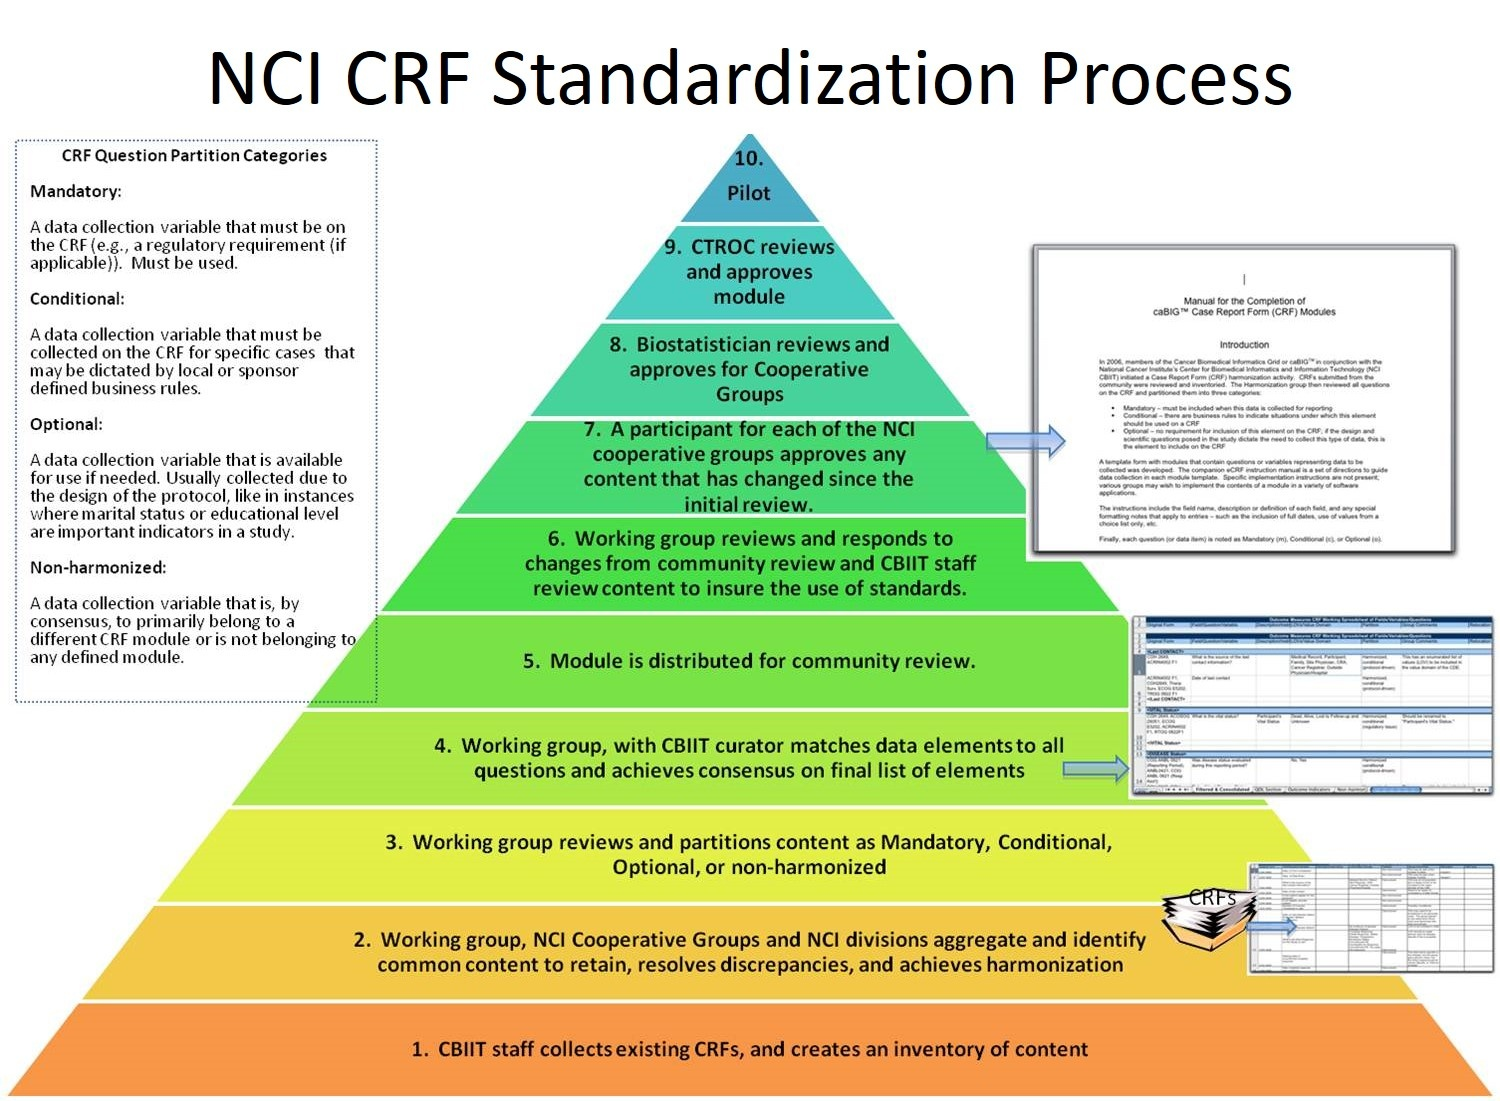 CRF Standardization Process diagram